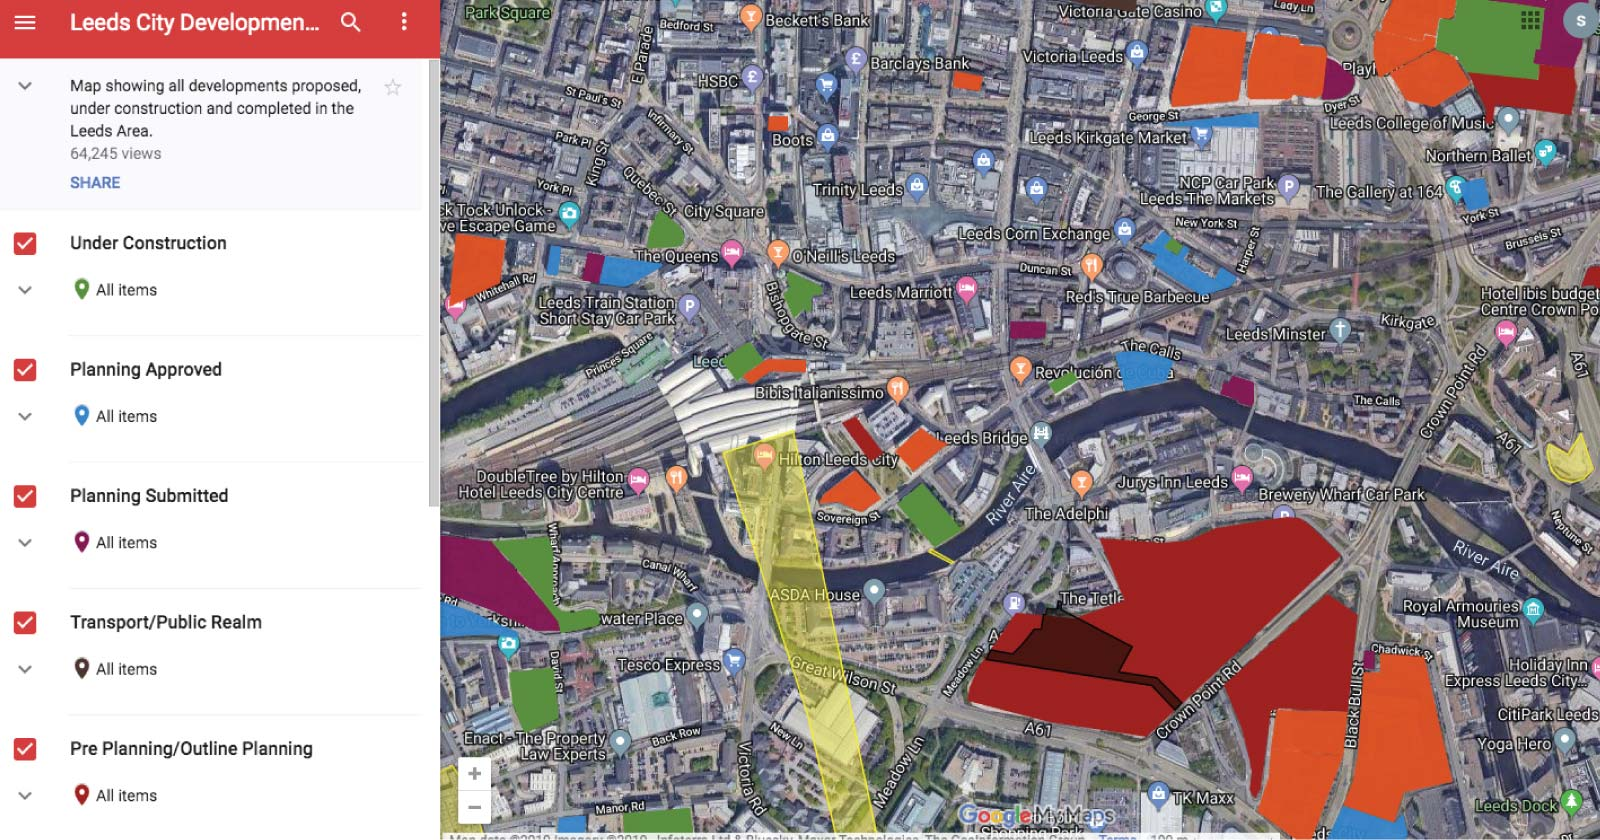 6 Brands That Will Inspire You to Create Better Content - Leeds city development map